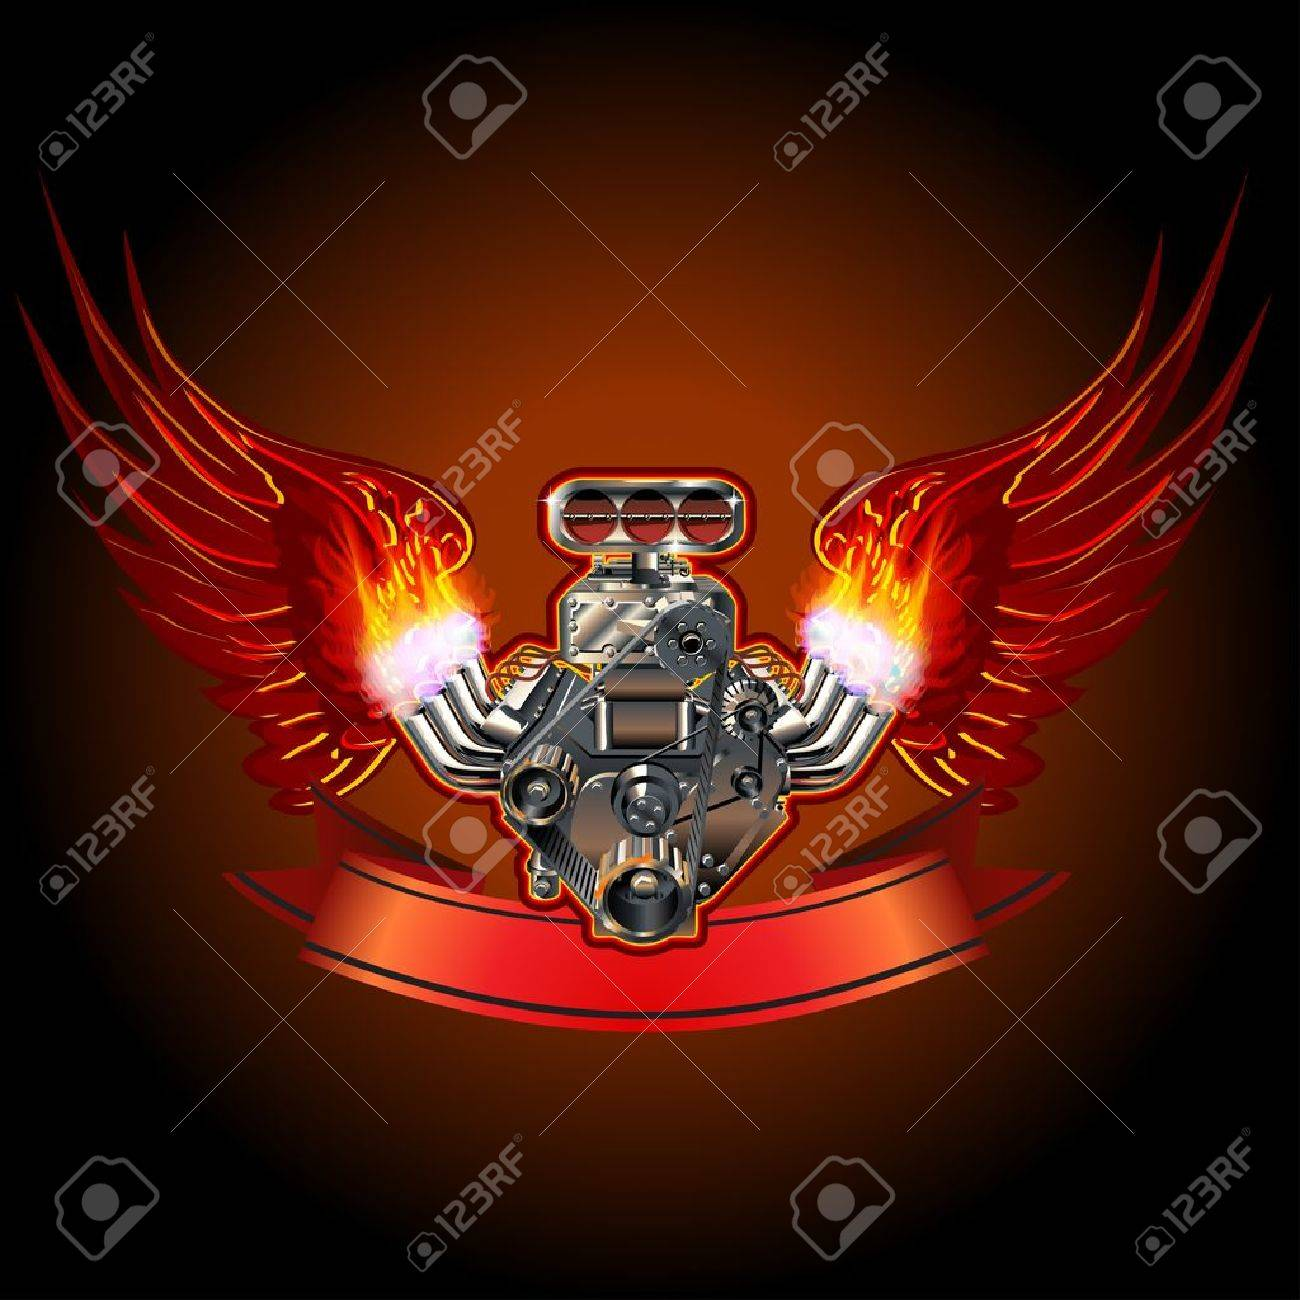 Turbo Engine with Wings Stock Vector - 17925903